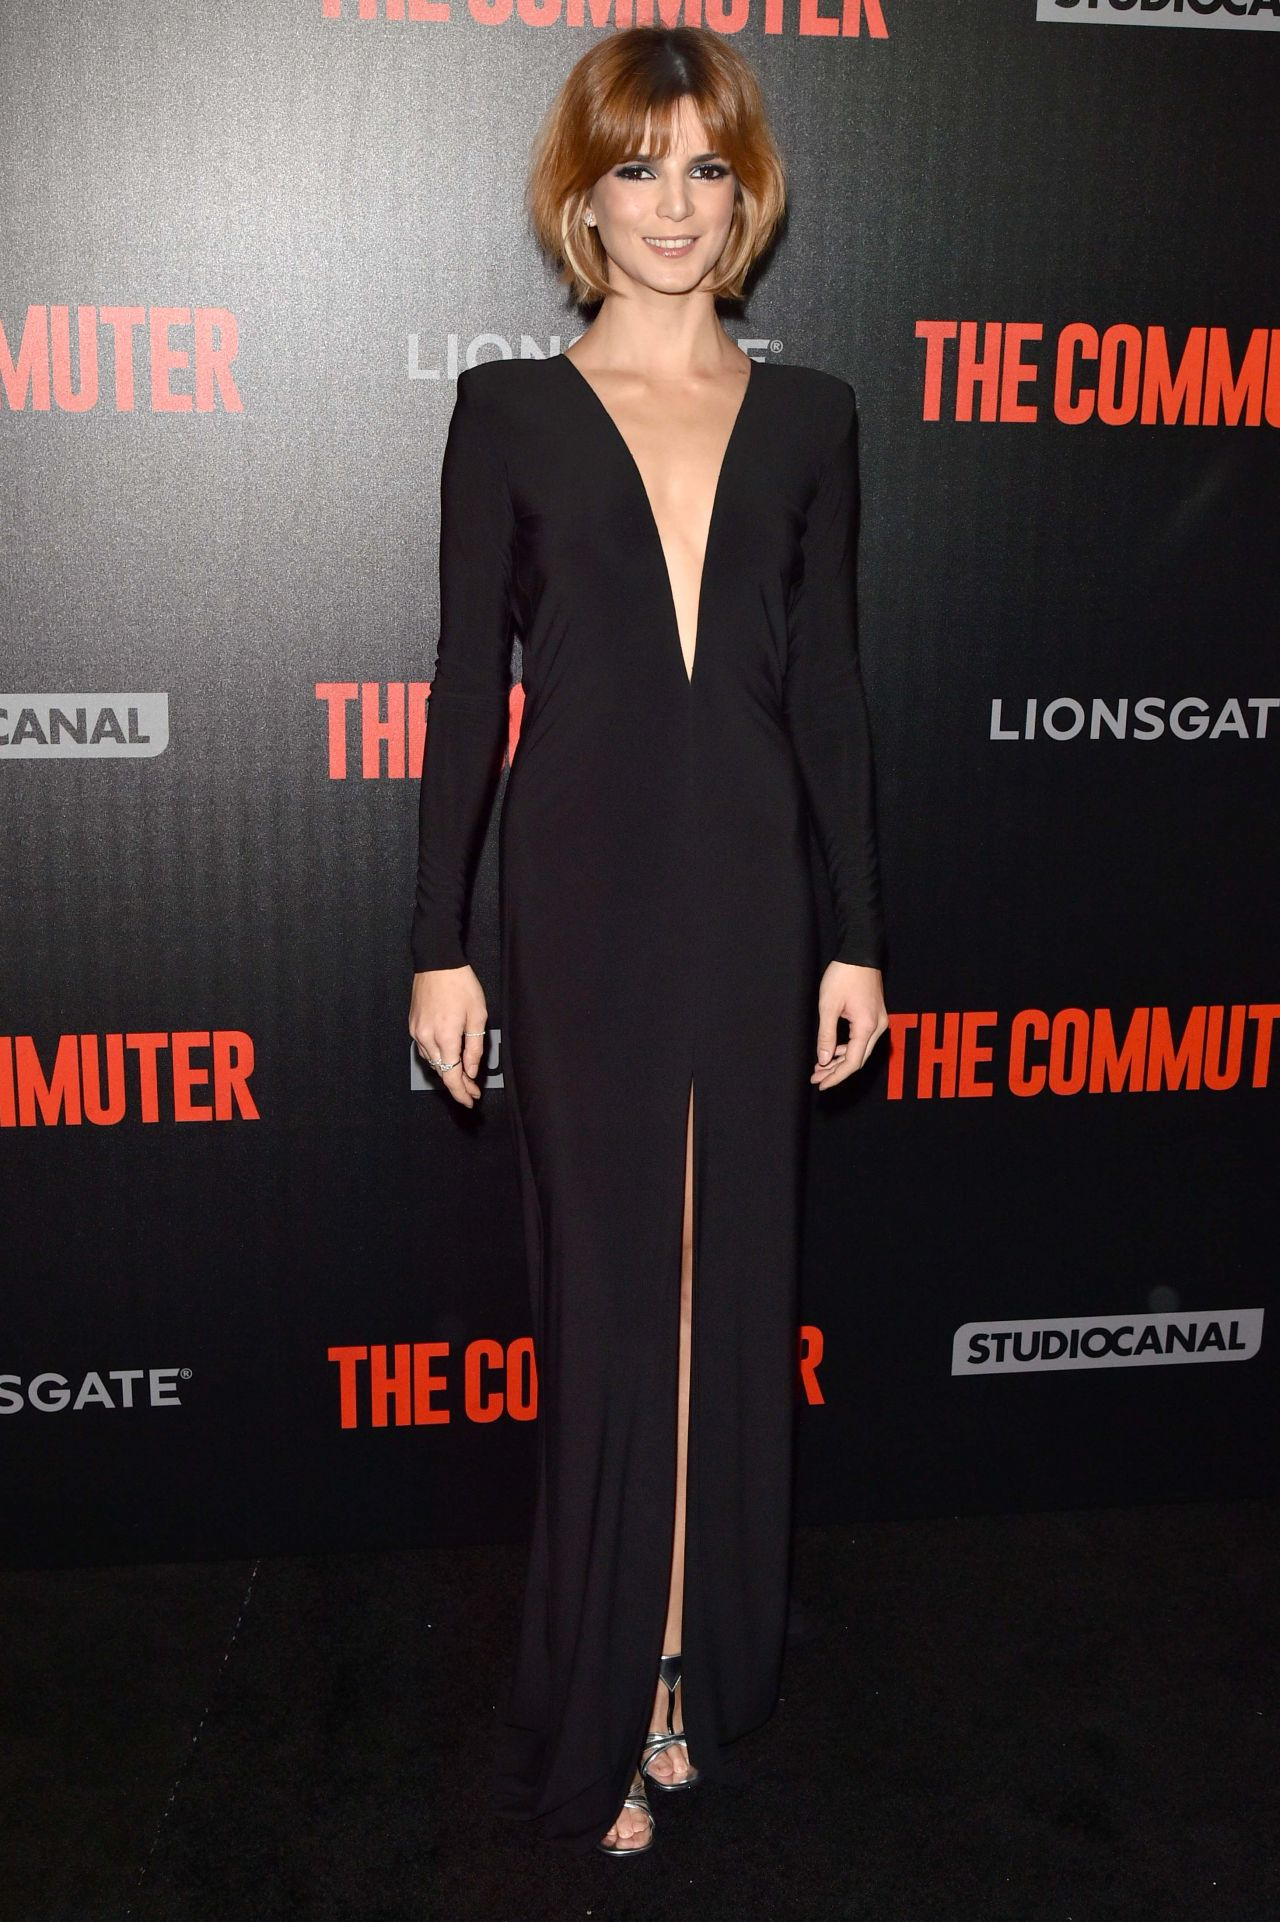 http://celebmafia.com/wp-content/uploads/2018/01/clara-lago-the-commuter-premiere-in-nyc-1.jpg